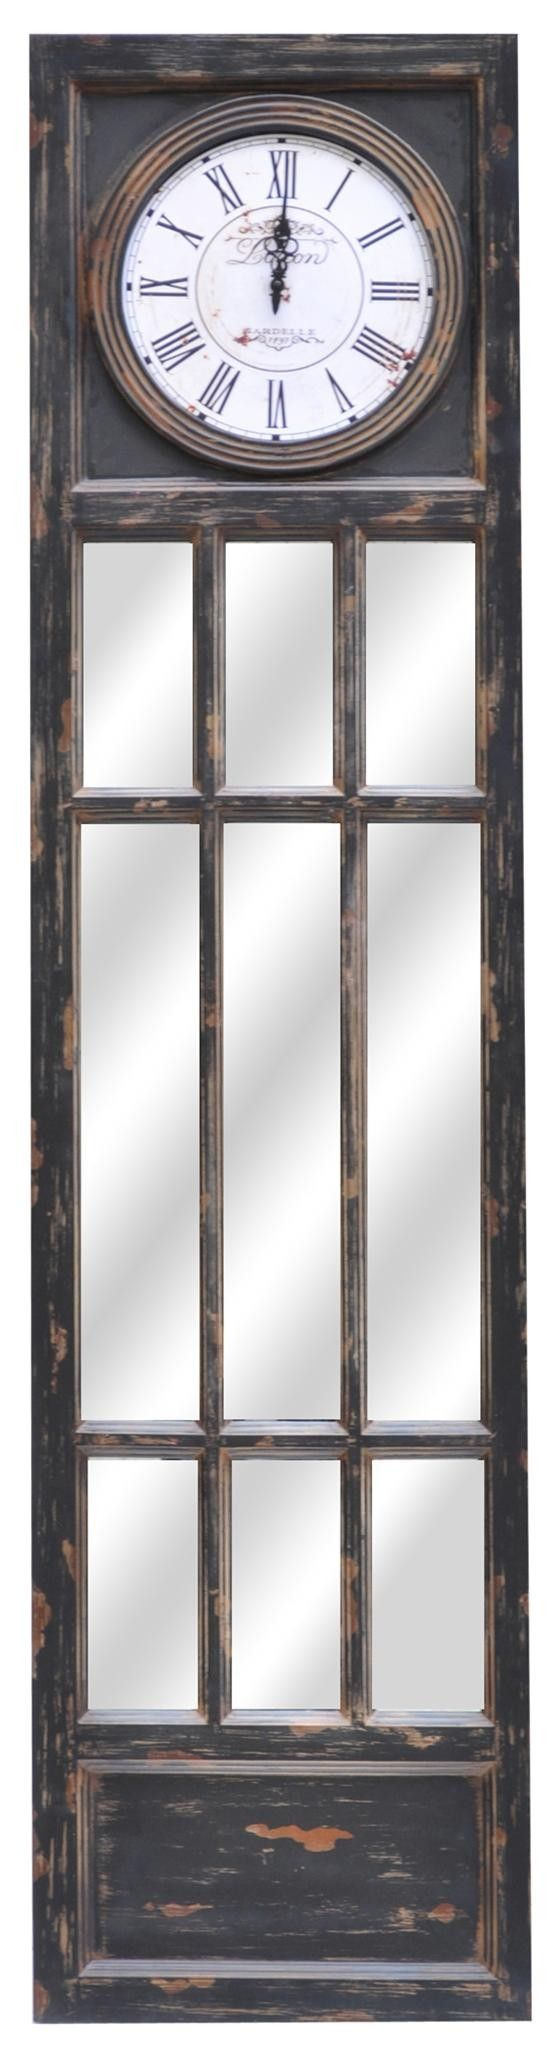 Mirrored Wood Panel with Clock from the Crestview Collection